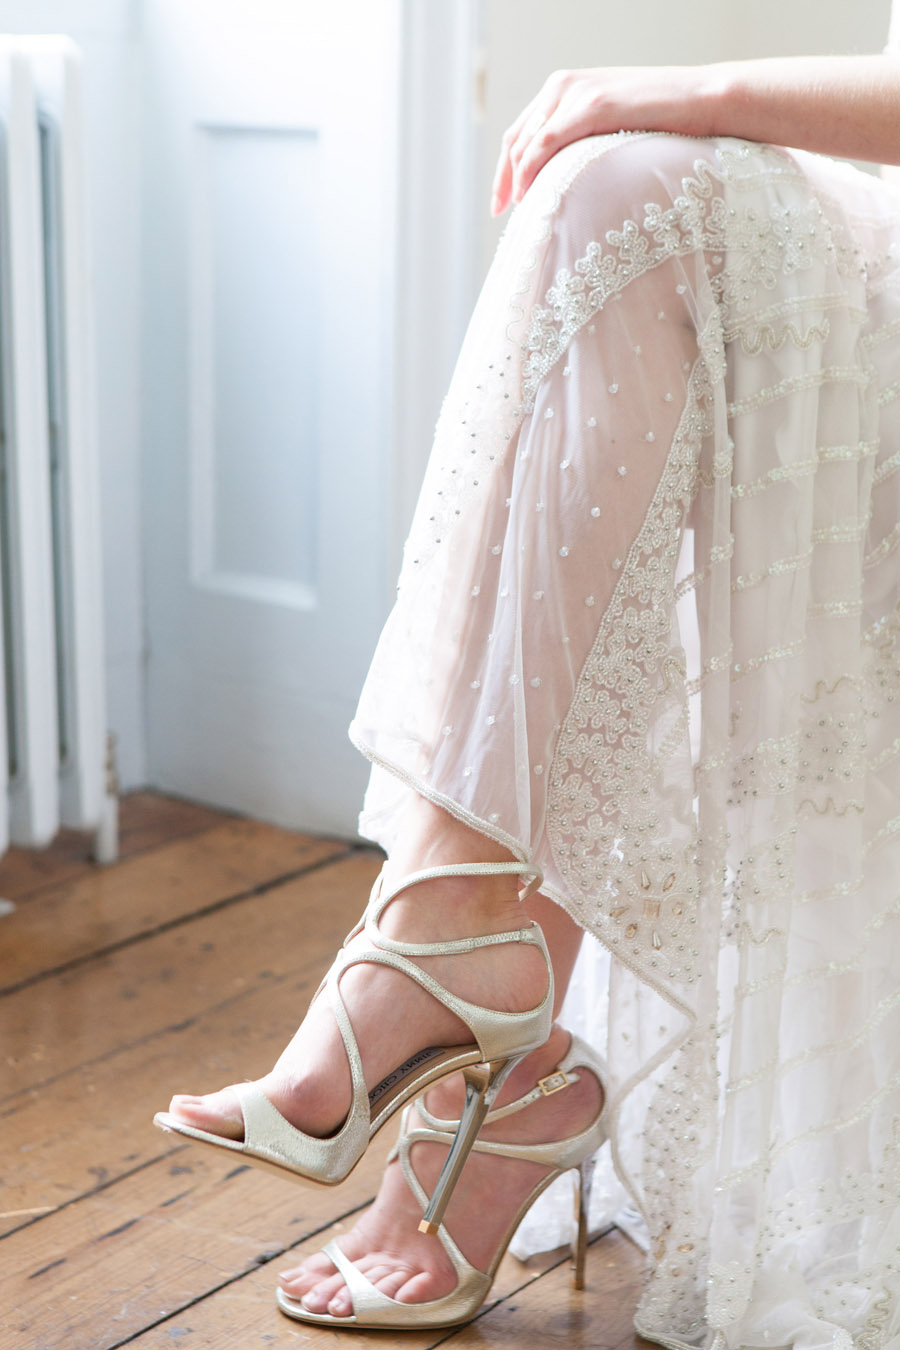 Elegant and timeless wedding look for 2019 brides and grooms, image credit Amanda Karen Photography (31)